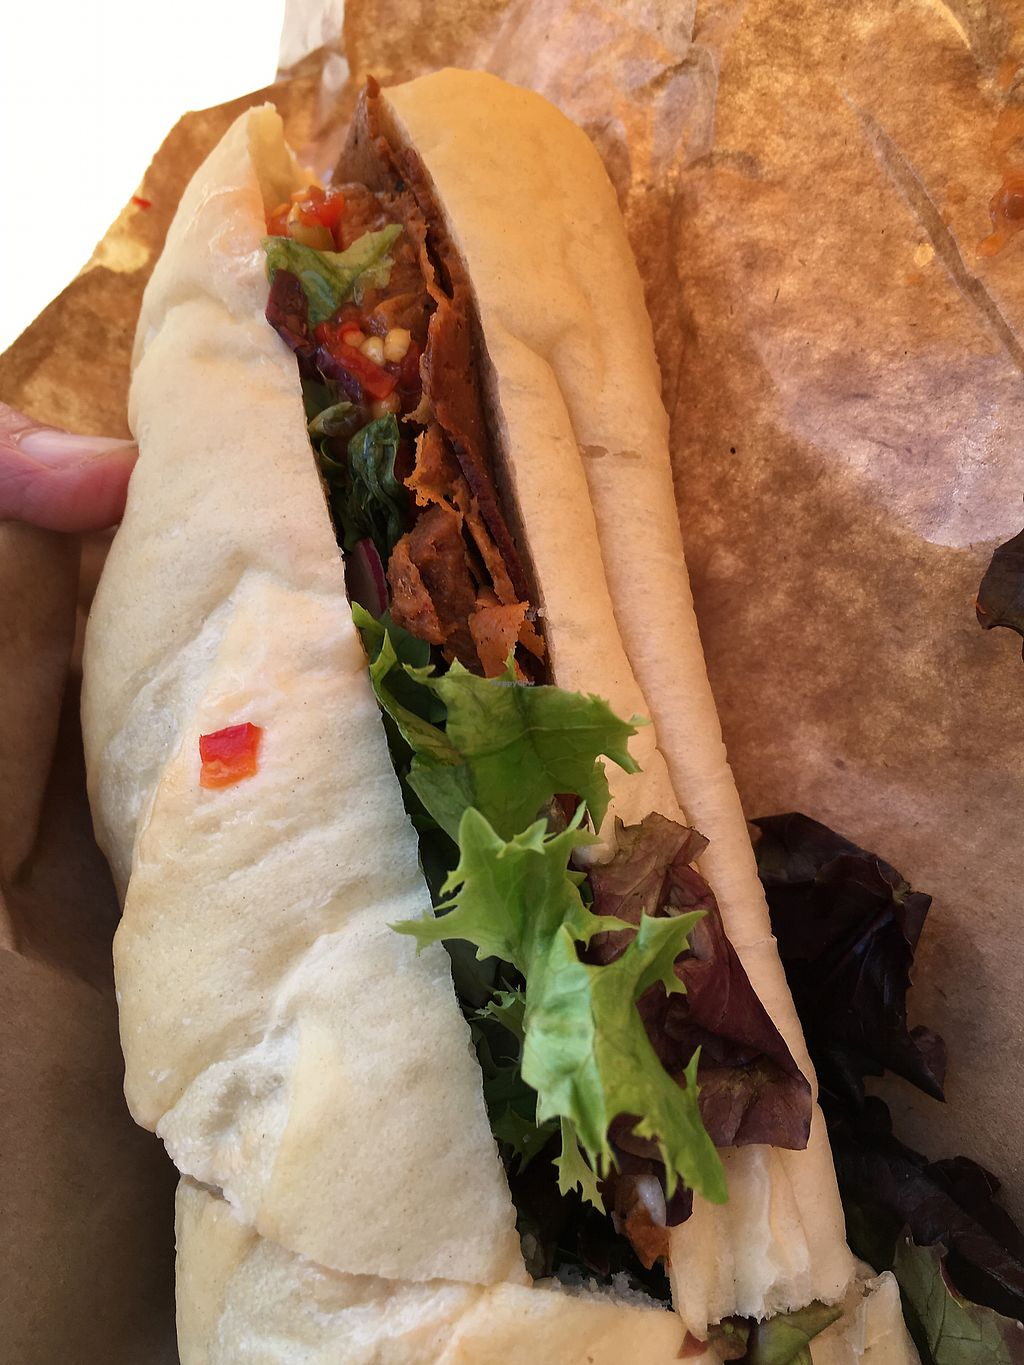 """Photo of The Herbivorous Butcher  by <a href=""""/members/profile/Veg4Jay"""">Veg4Jay</a> <br/>Italian Cold Cut Sandwich-half <br/> July 22, 2017  - <a href='/contact/abuse/image/48170/283357'>Report</a>"""